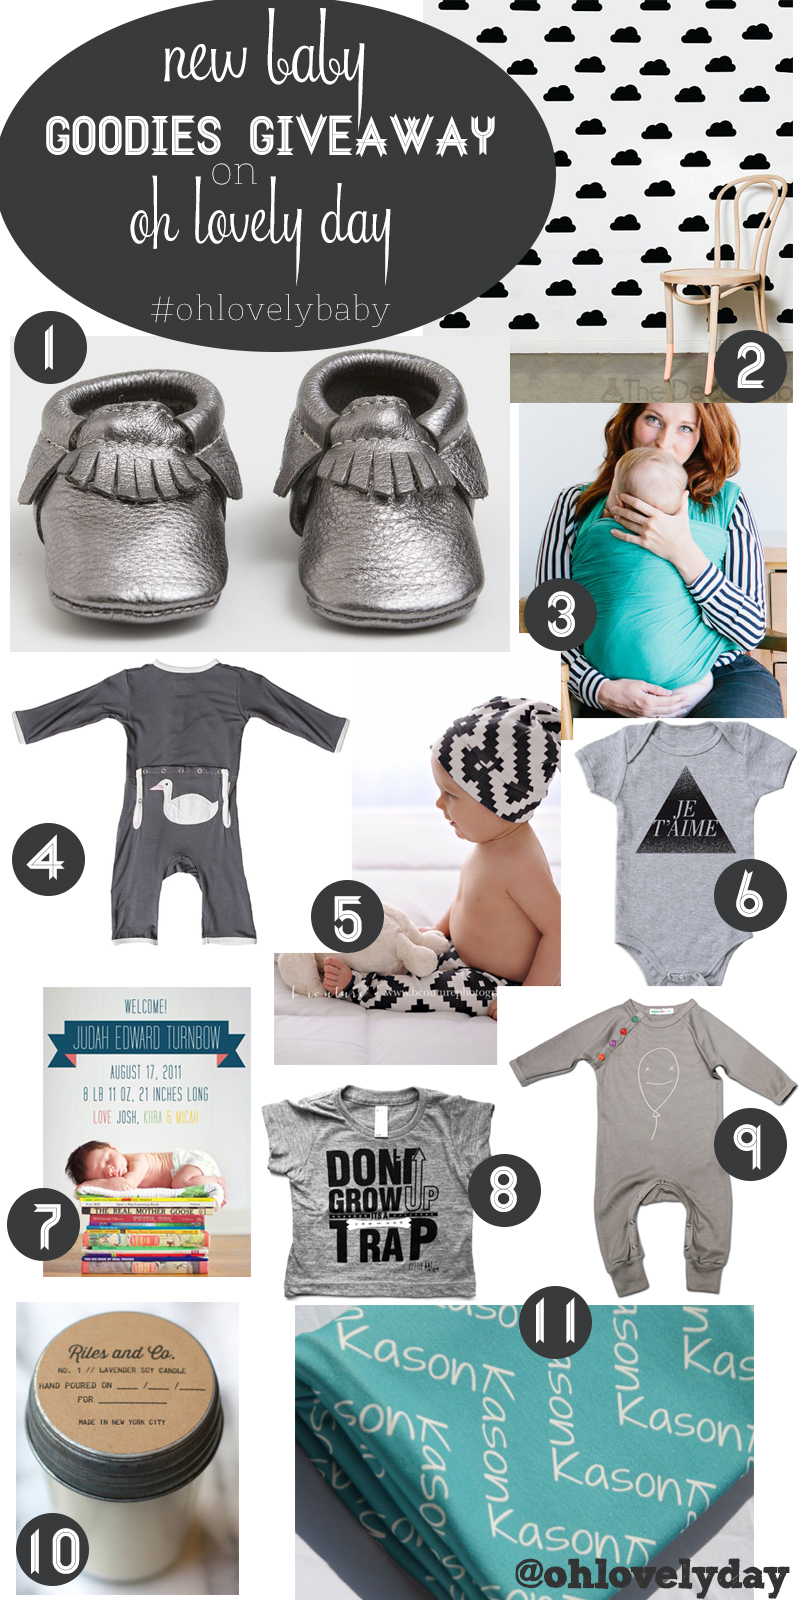 baby goodies giveaway on Oh Lovely Day